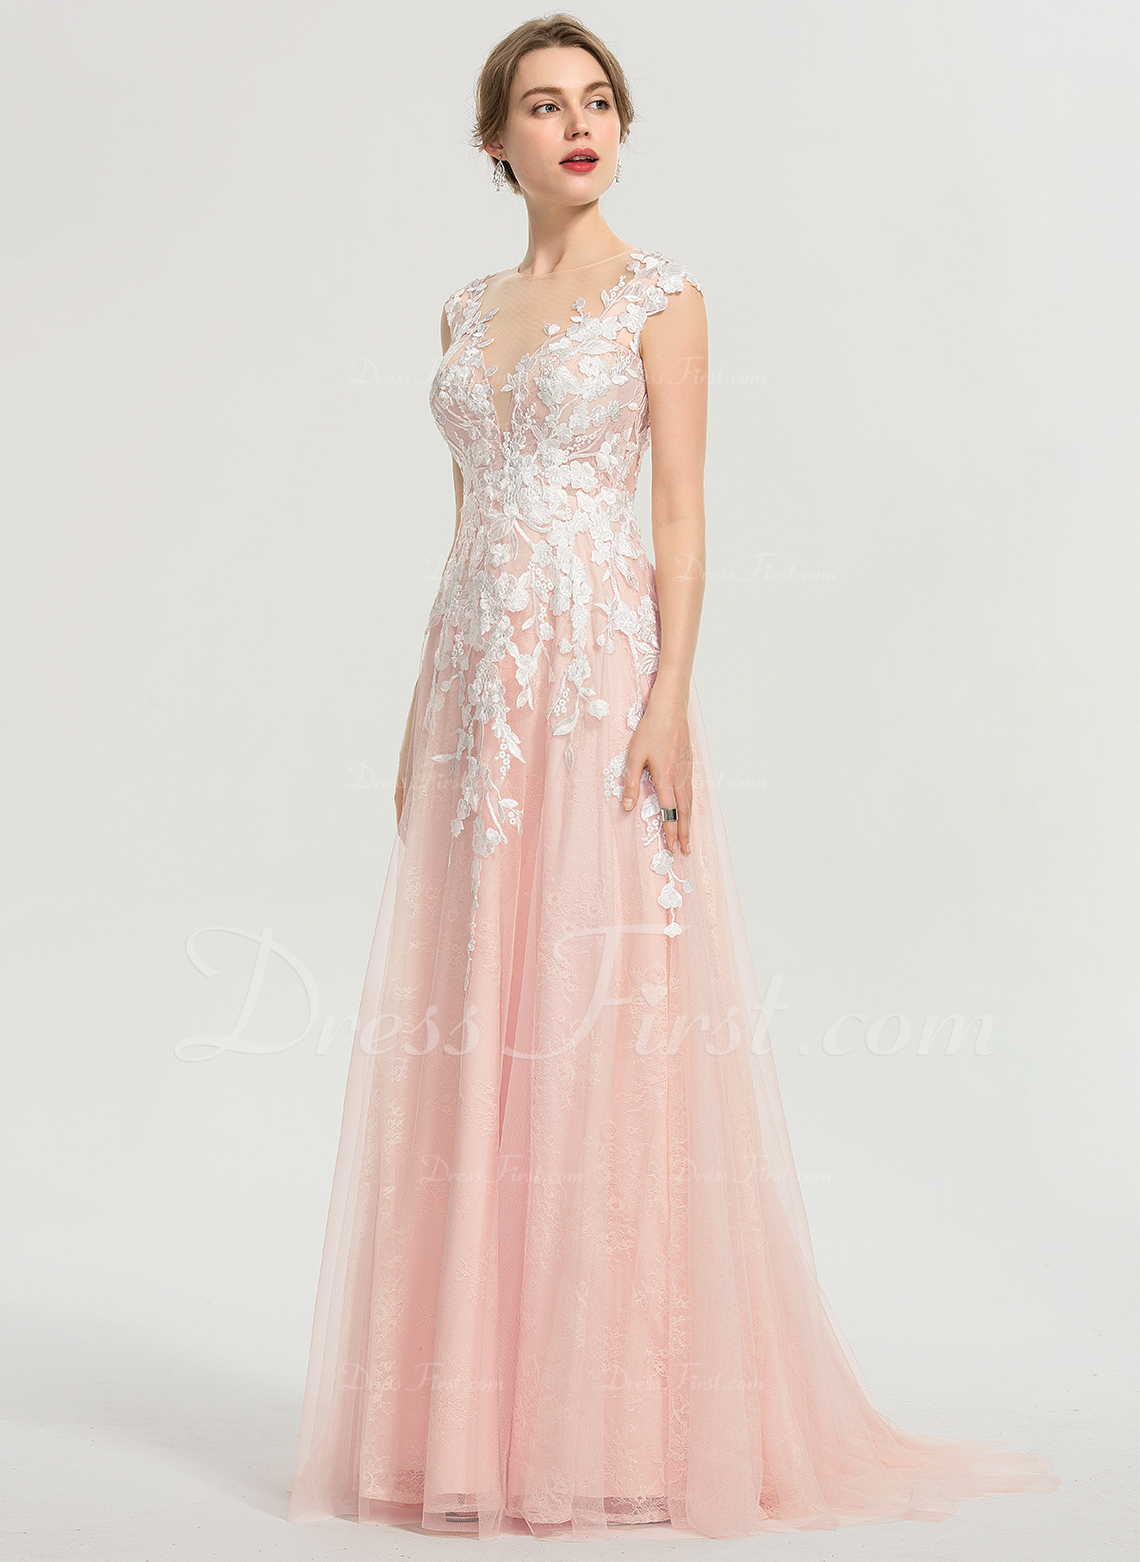 A-Line Scoop Neck Sweep Train Tulle Prom Dresses